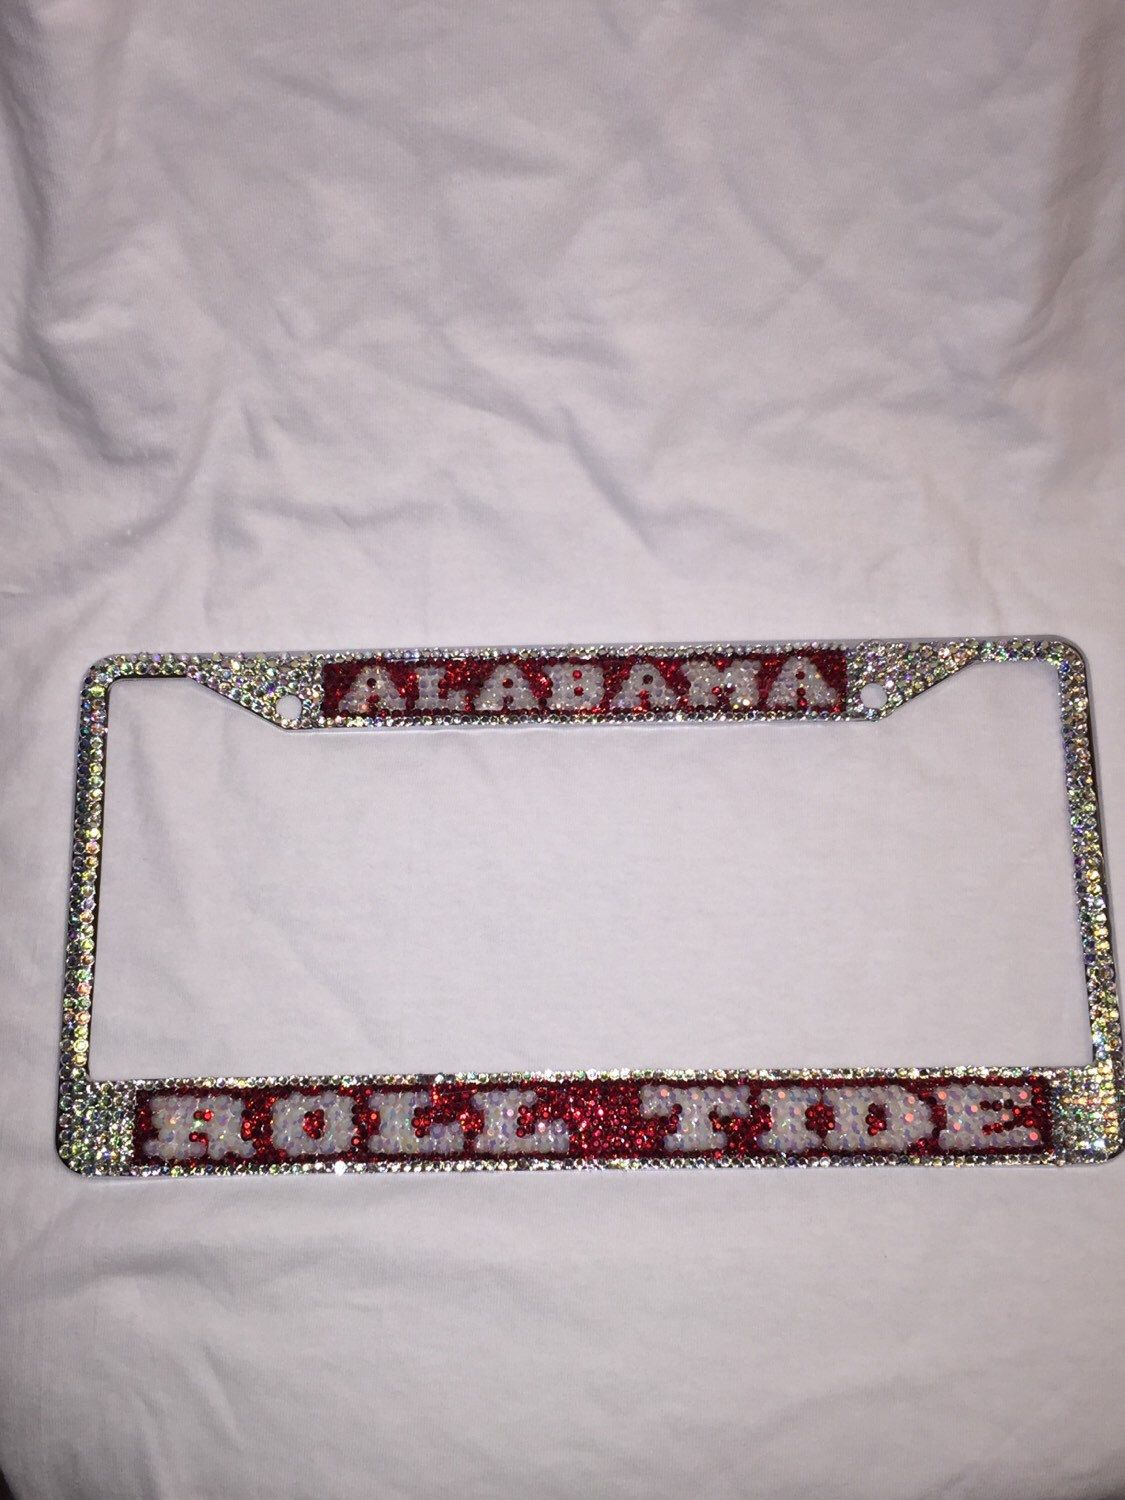 University Alabama roll tide bling license plate frame | Bling ...